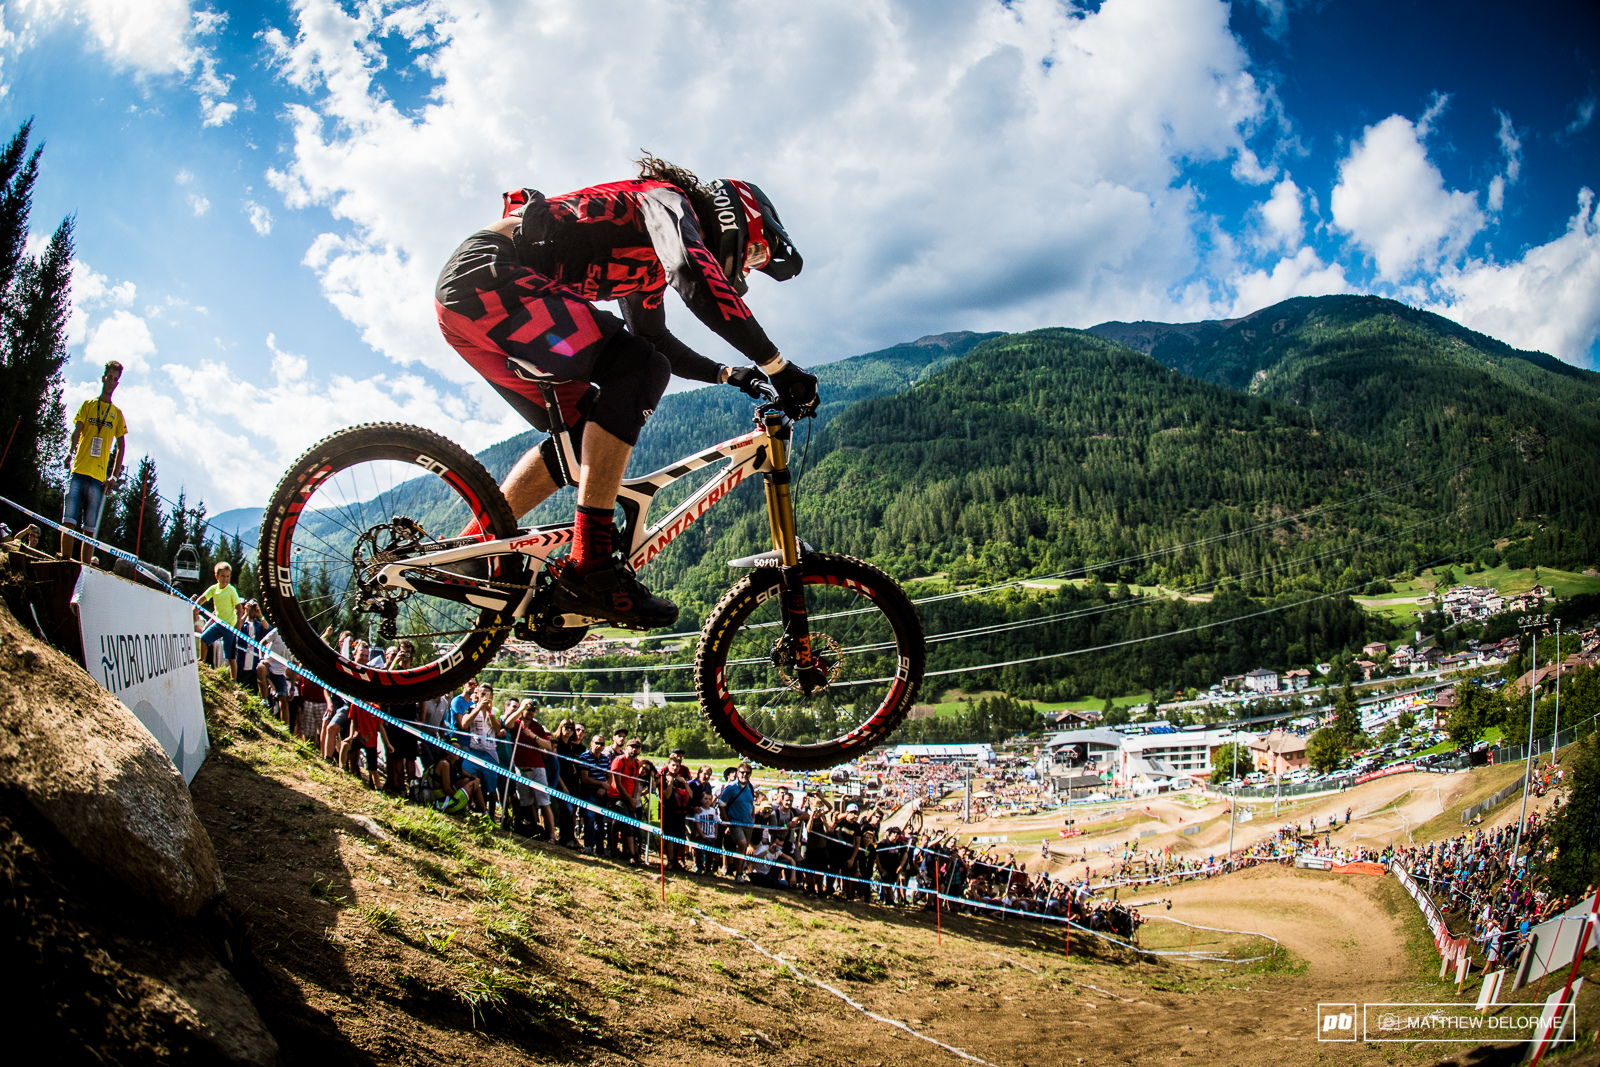 Ratty sending it off the drop and heading into the finish arena. Ratty finished fifth. The big question is how is he going to go at World s We can t wait to see.